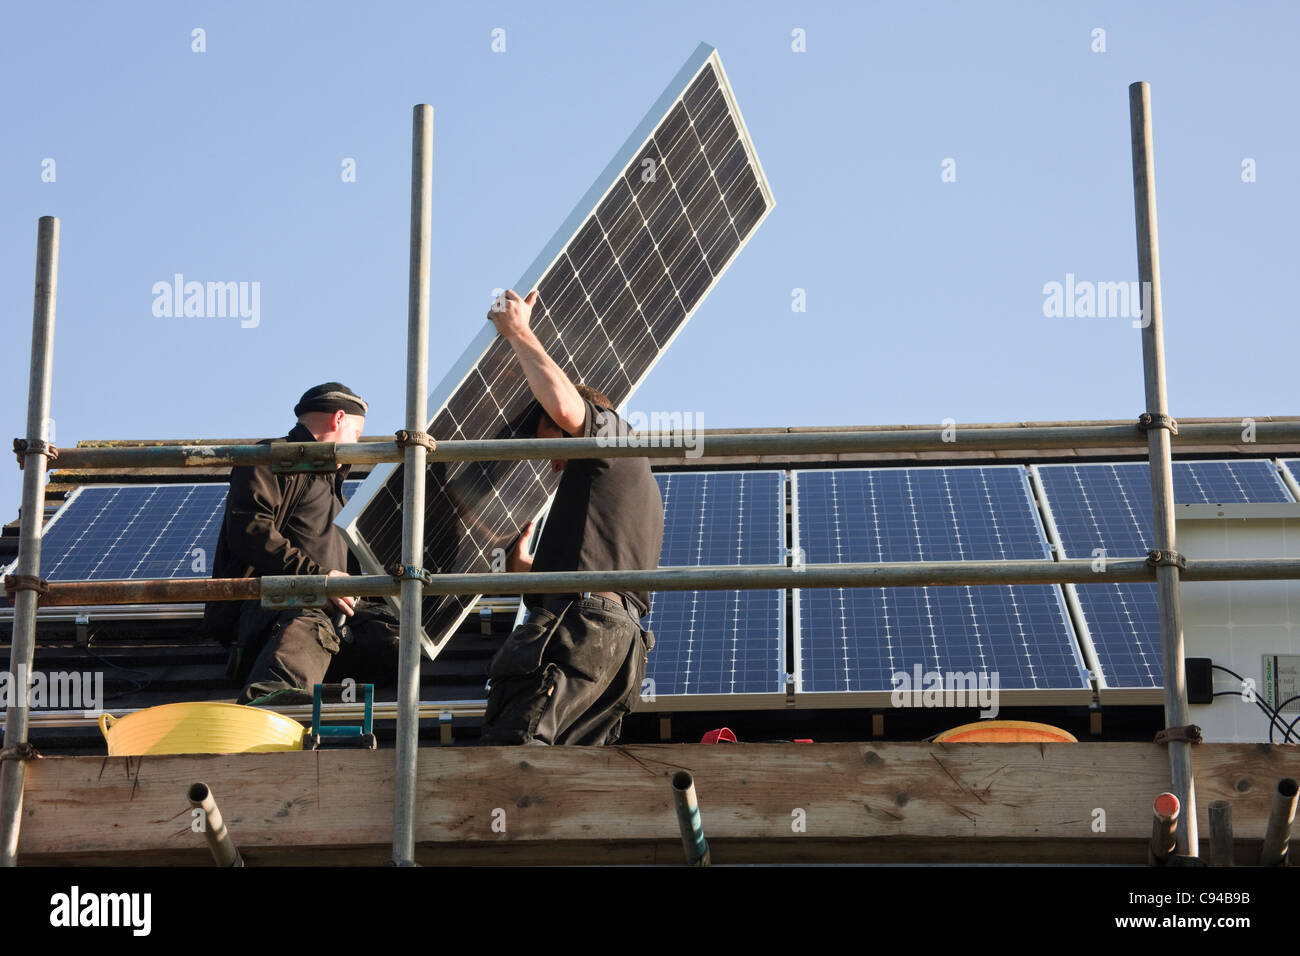 UK, Britain, Europe. Workmen fitting new solar panels to a house roof for the Feed-in Tariff scheme - Stock Image